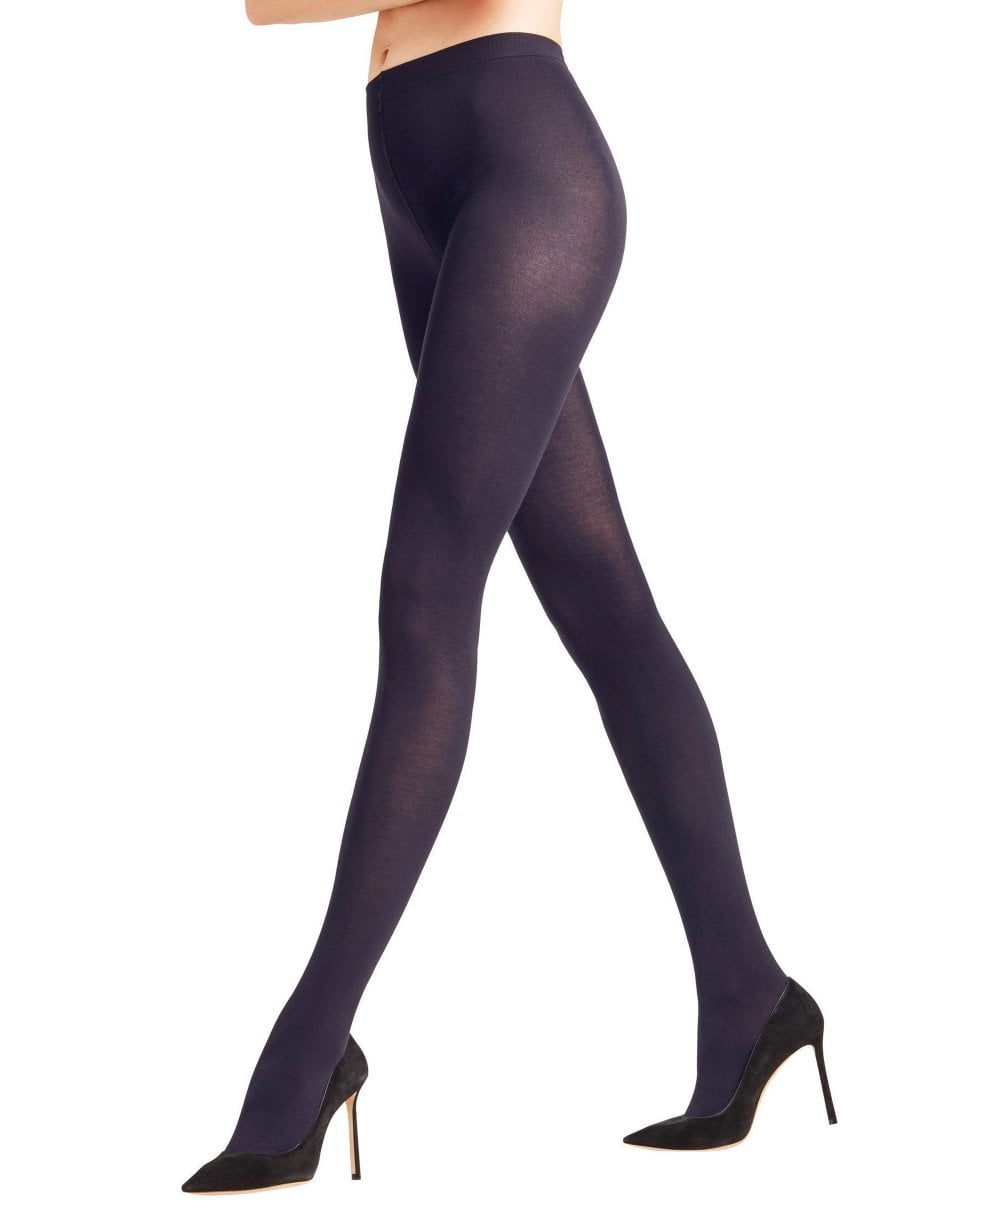 a81a6b0e105 Falke Cotton Touch Tights - Tights from luxury-legs.com UK